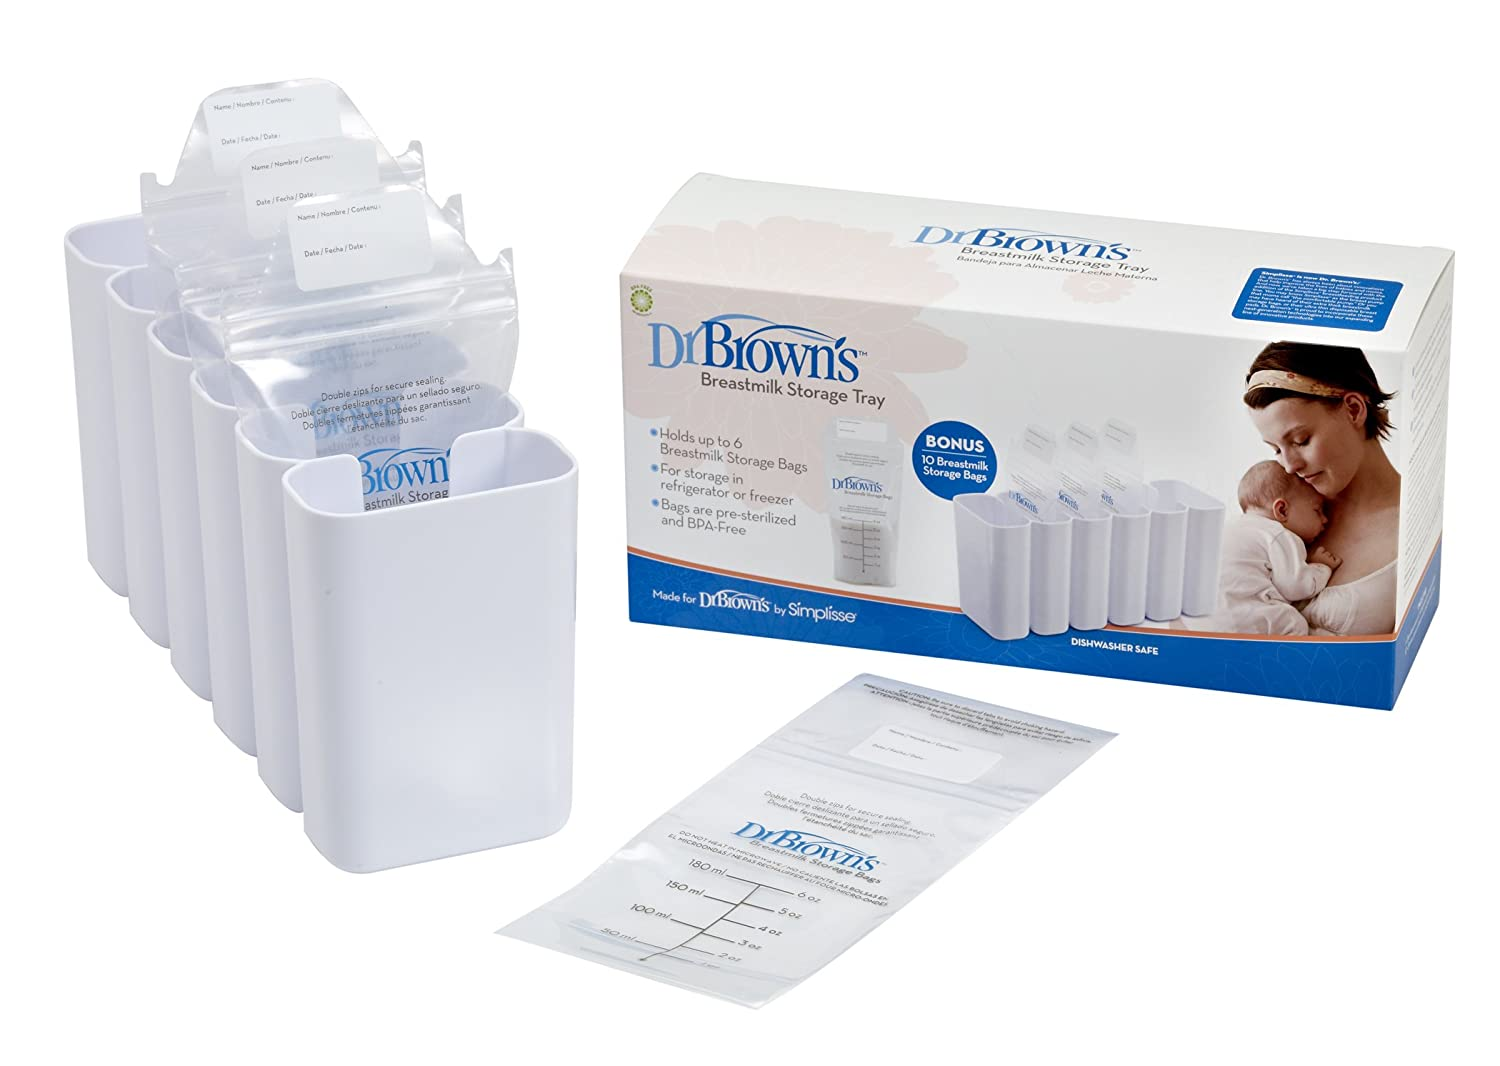 Amazon.com : Dr. Browns Breastmilk Storage Tray (Discontinued by Manufacturer) : Breast Milk Storage Trays : Baby